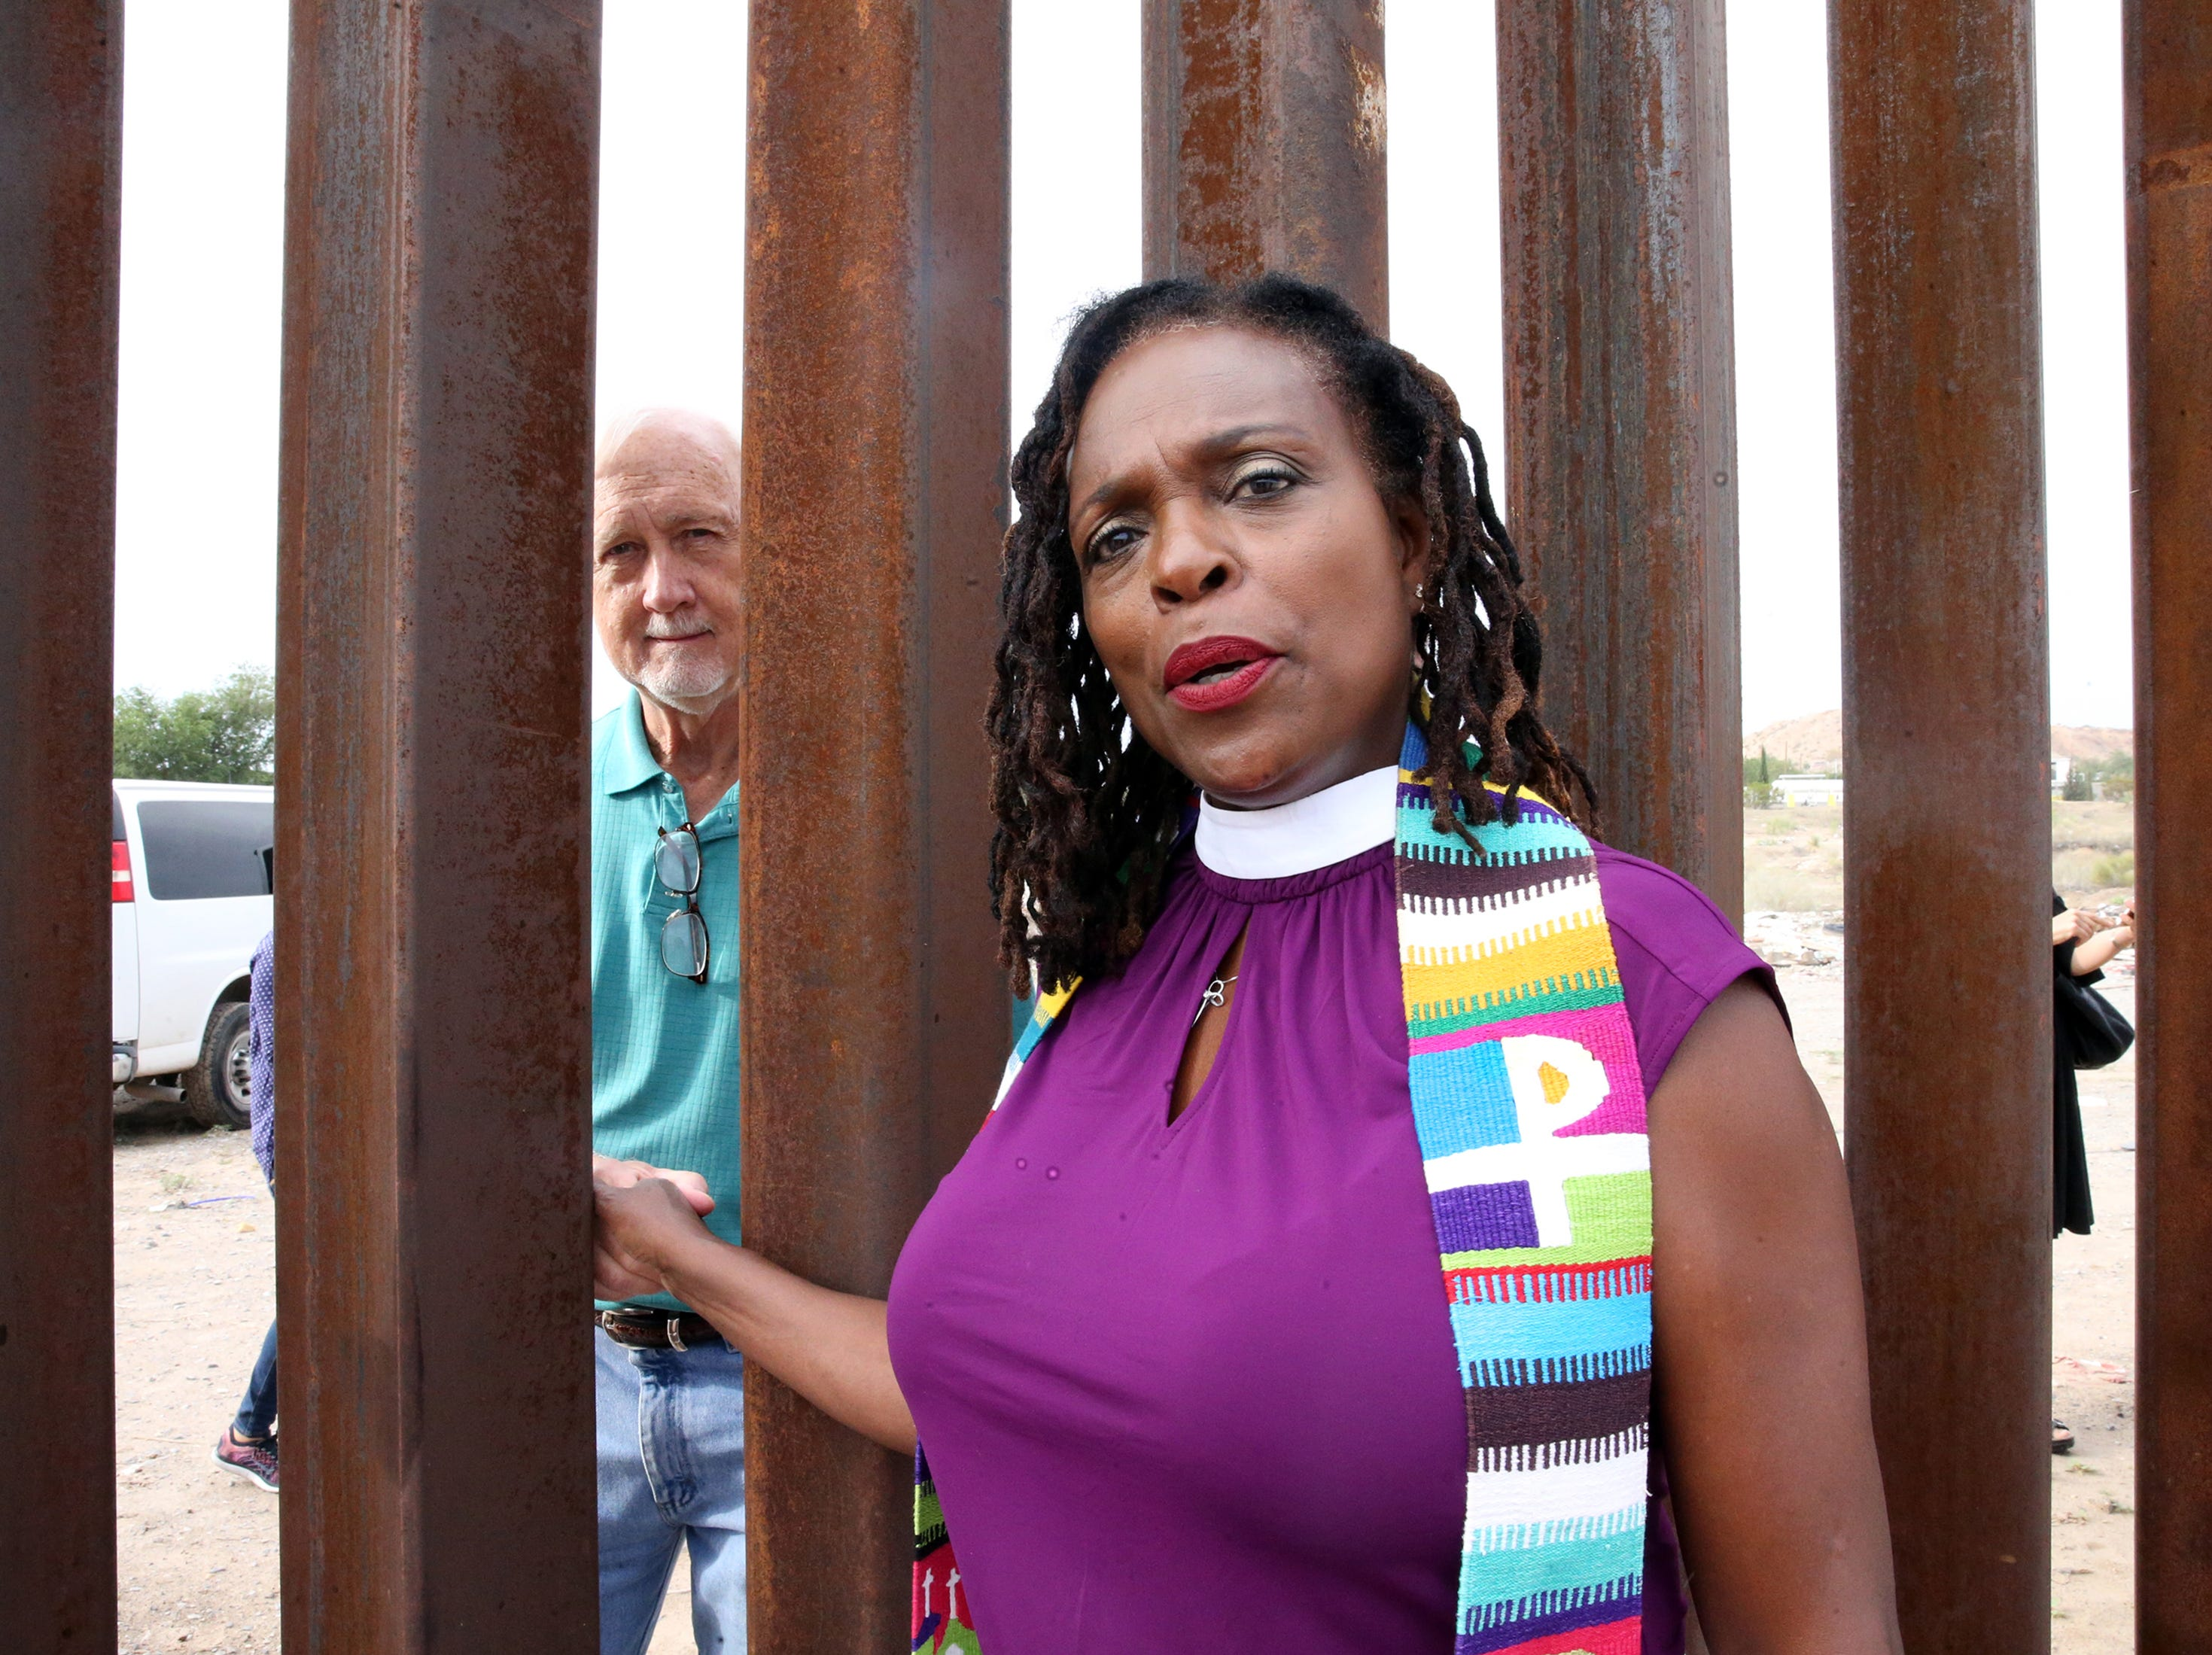 The Rev. Jacqui Lewis of Middle Church in New York City holds hands through the border fence with her husband, the Rev. John Janka of United Methodist Church, also in New York City, on Friday in Sunland Park, N.M.